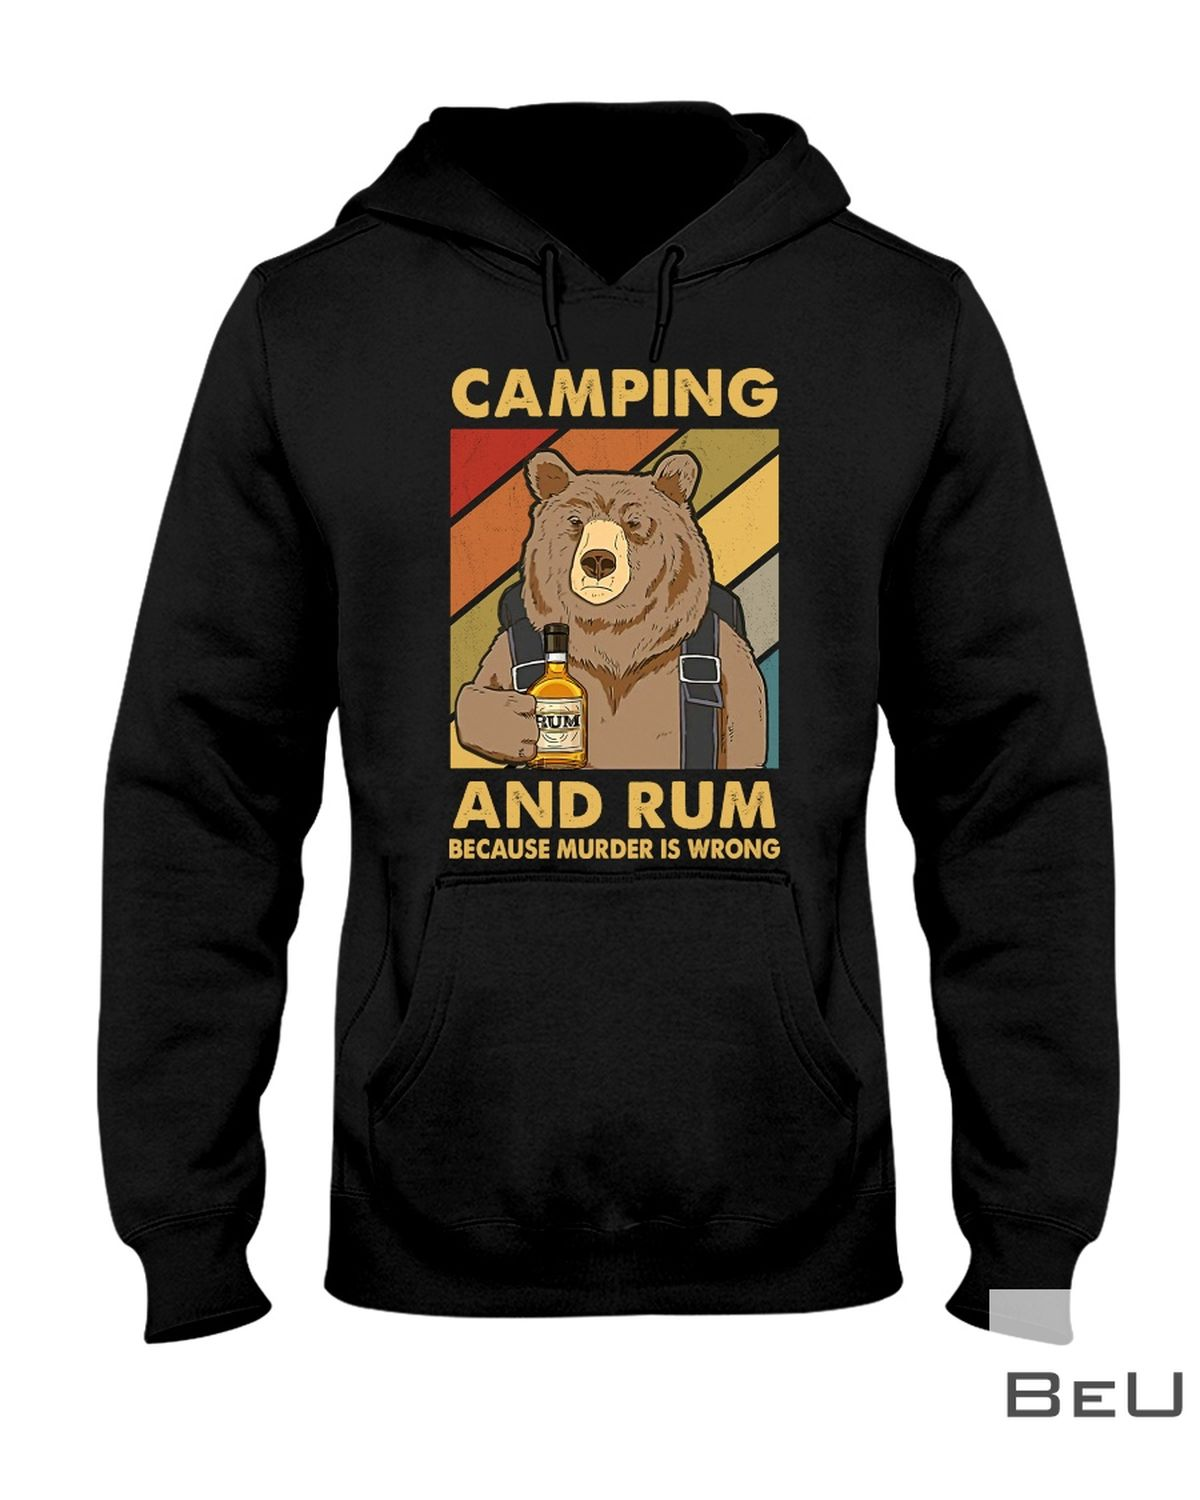 Camping And Rum Because Murder Is Wrong Shirtx